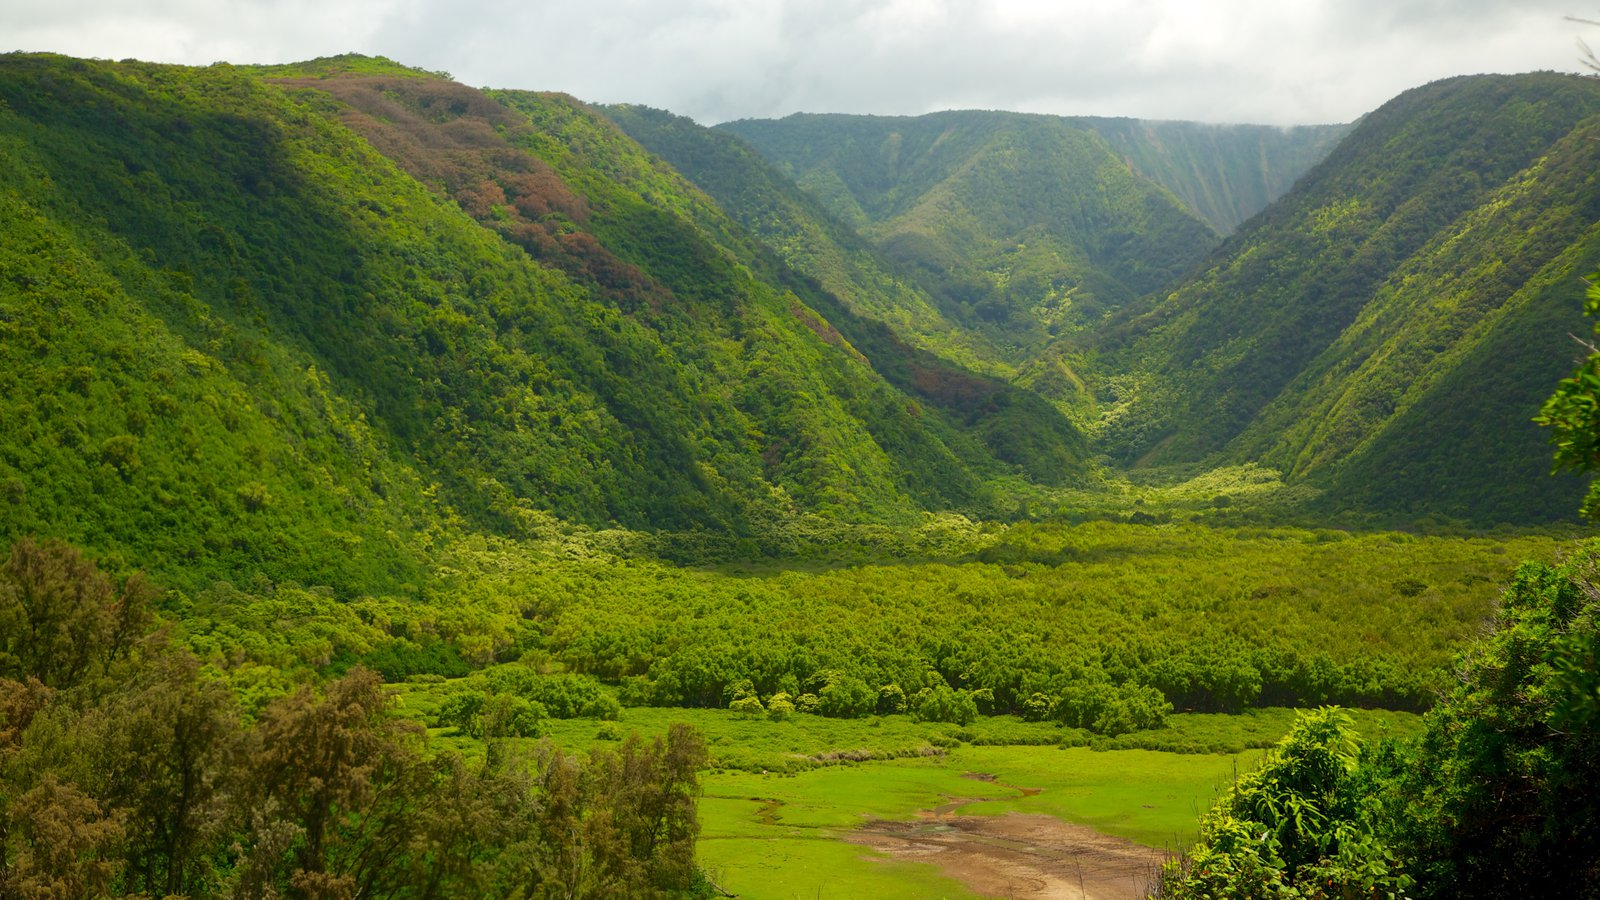 Pololu Valley Overlook showing landscape views and mountains